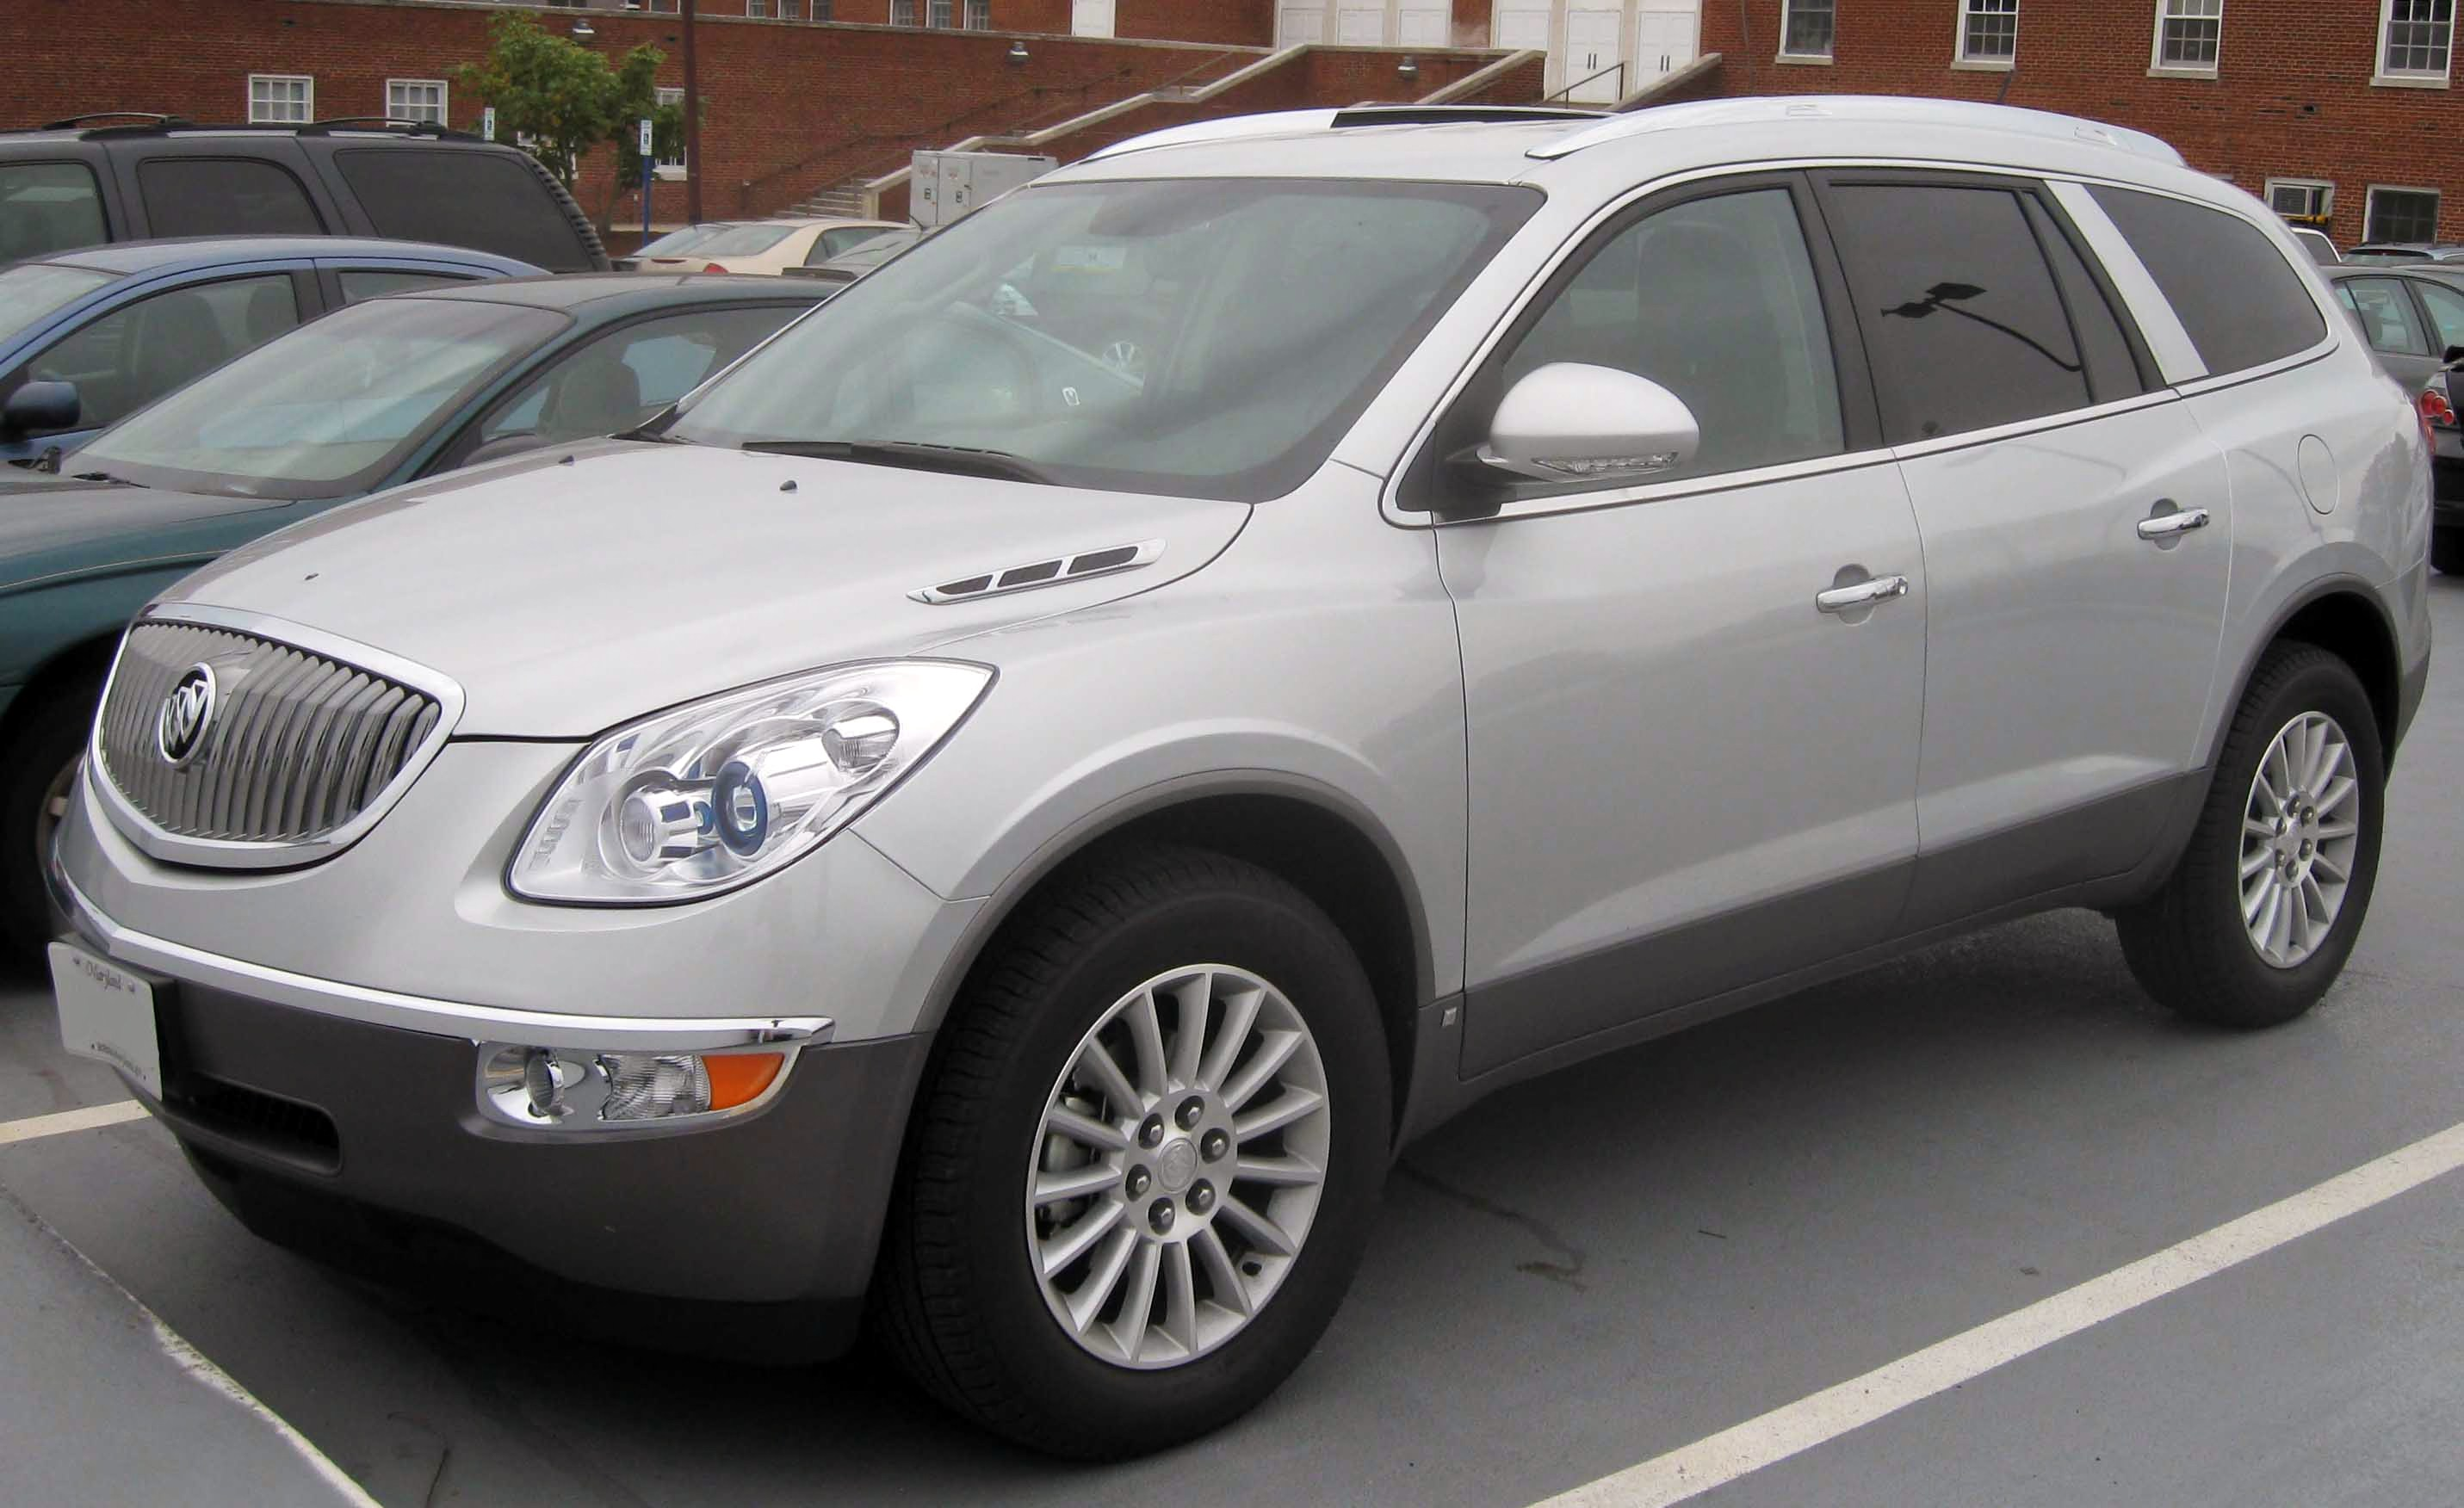 Ground Clearance Buick Enclave Autos Post